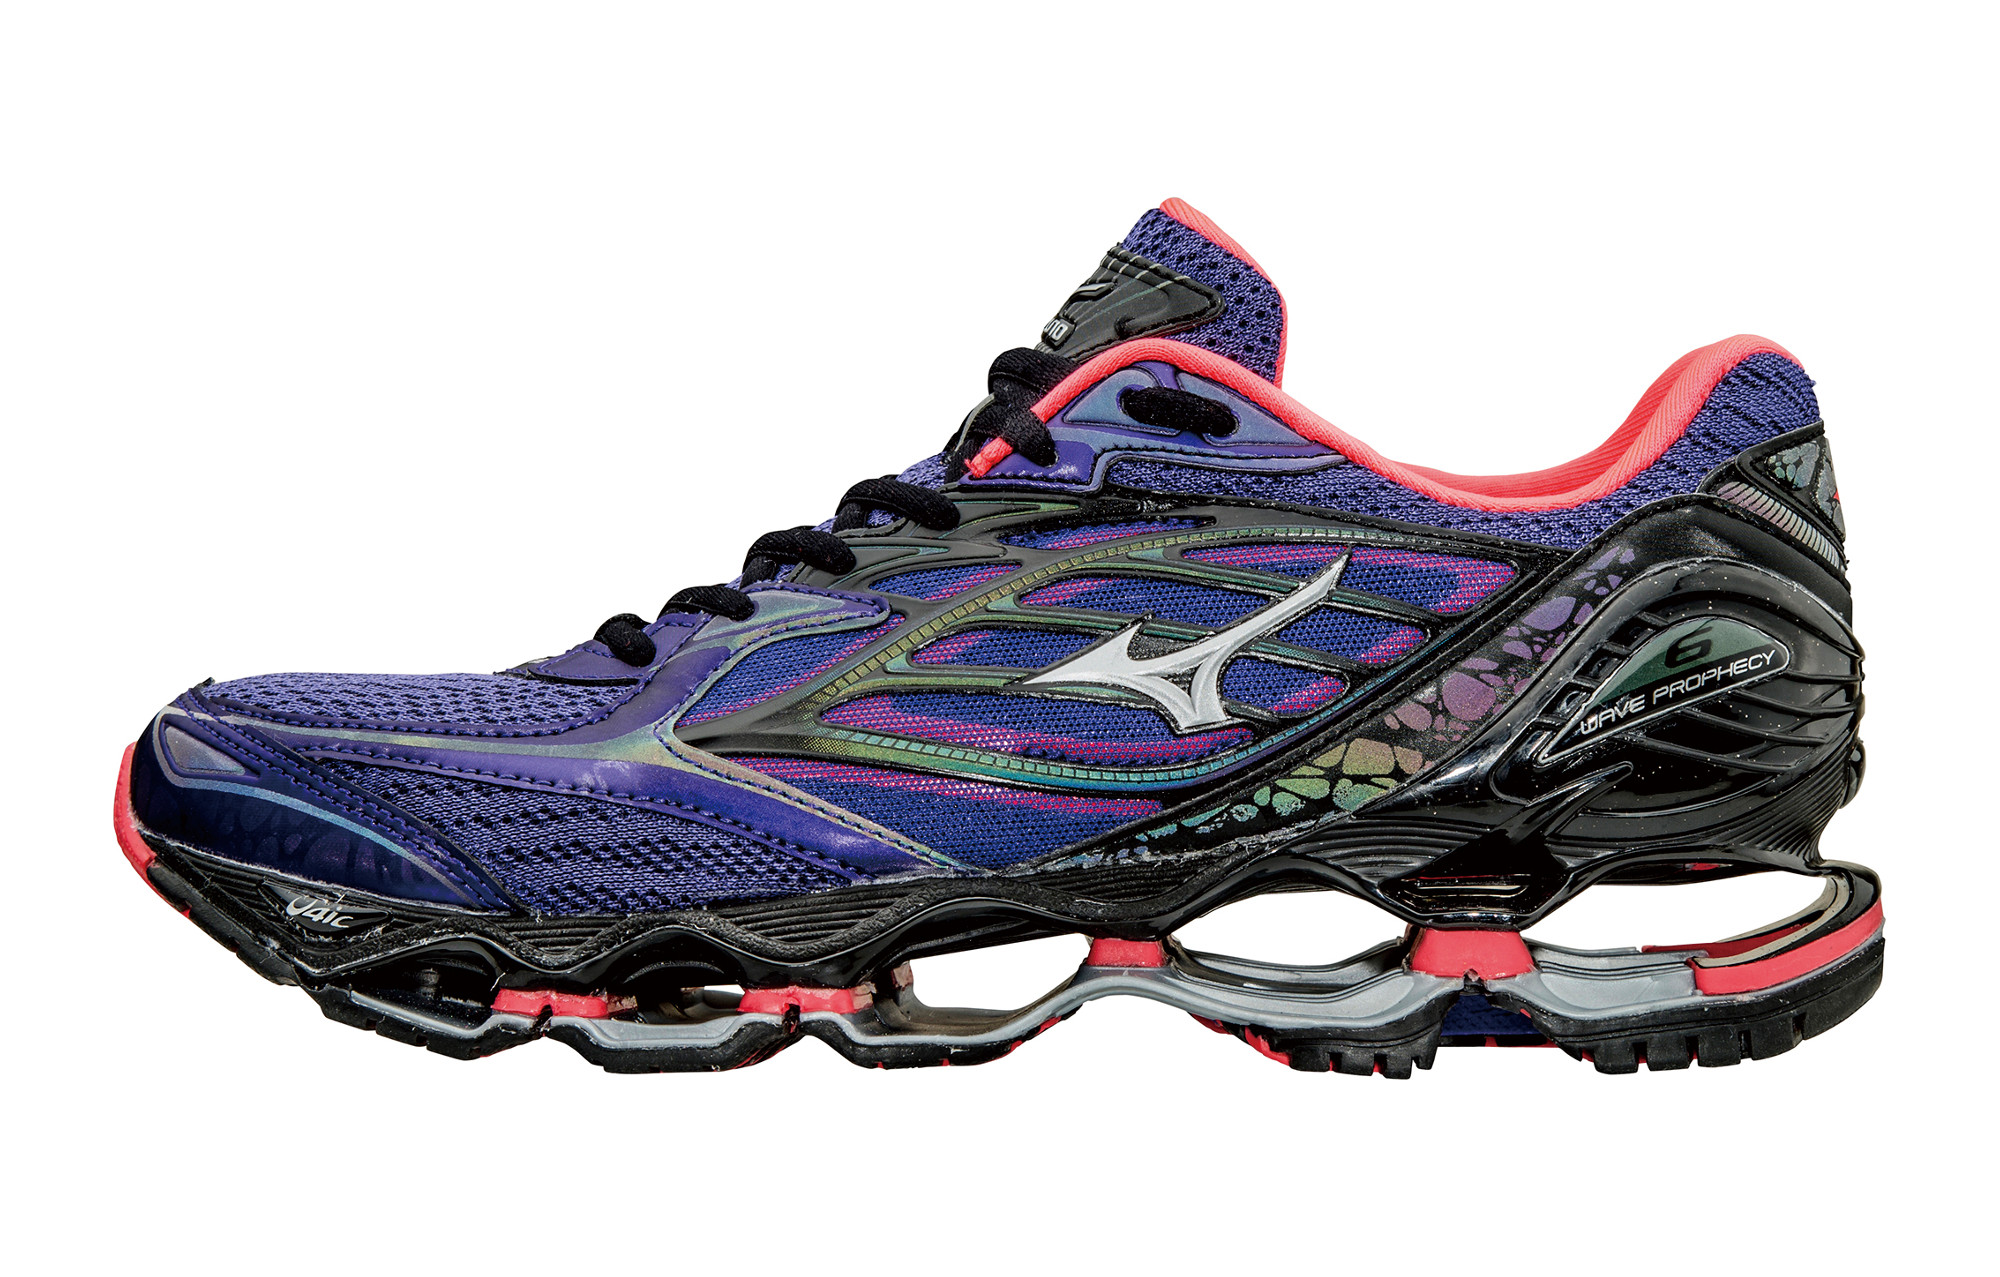 26360f3040e0 Mizuno Wave Prophecy 6 Nova Purple Black Woman